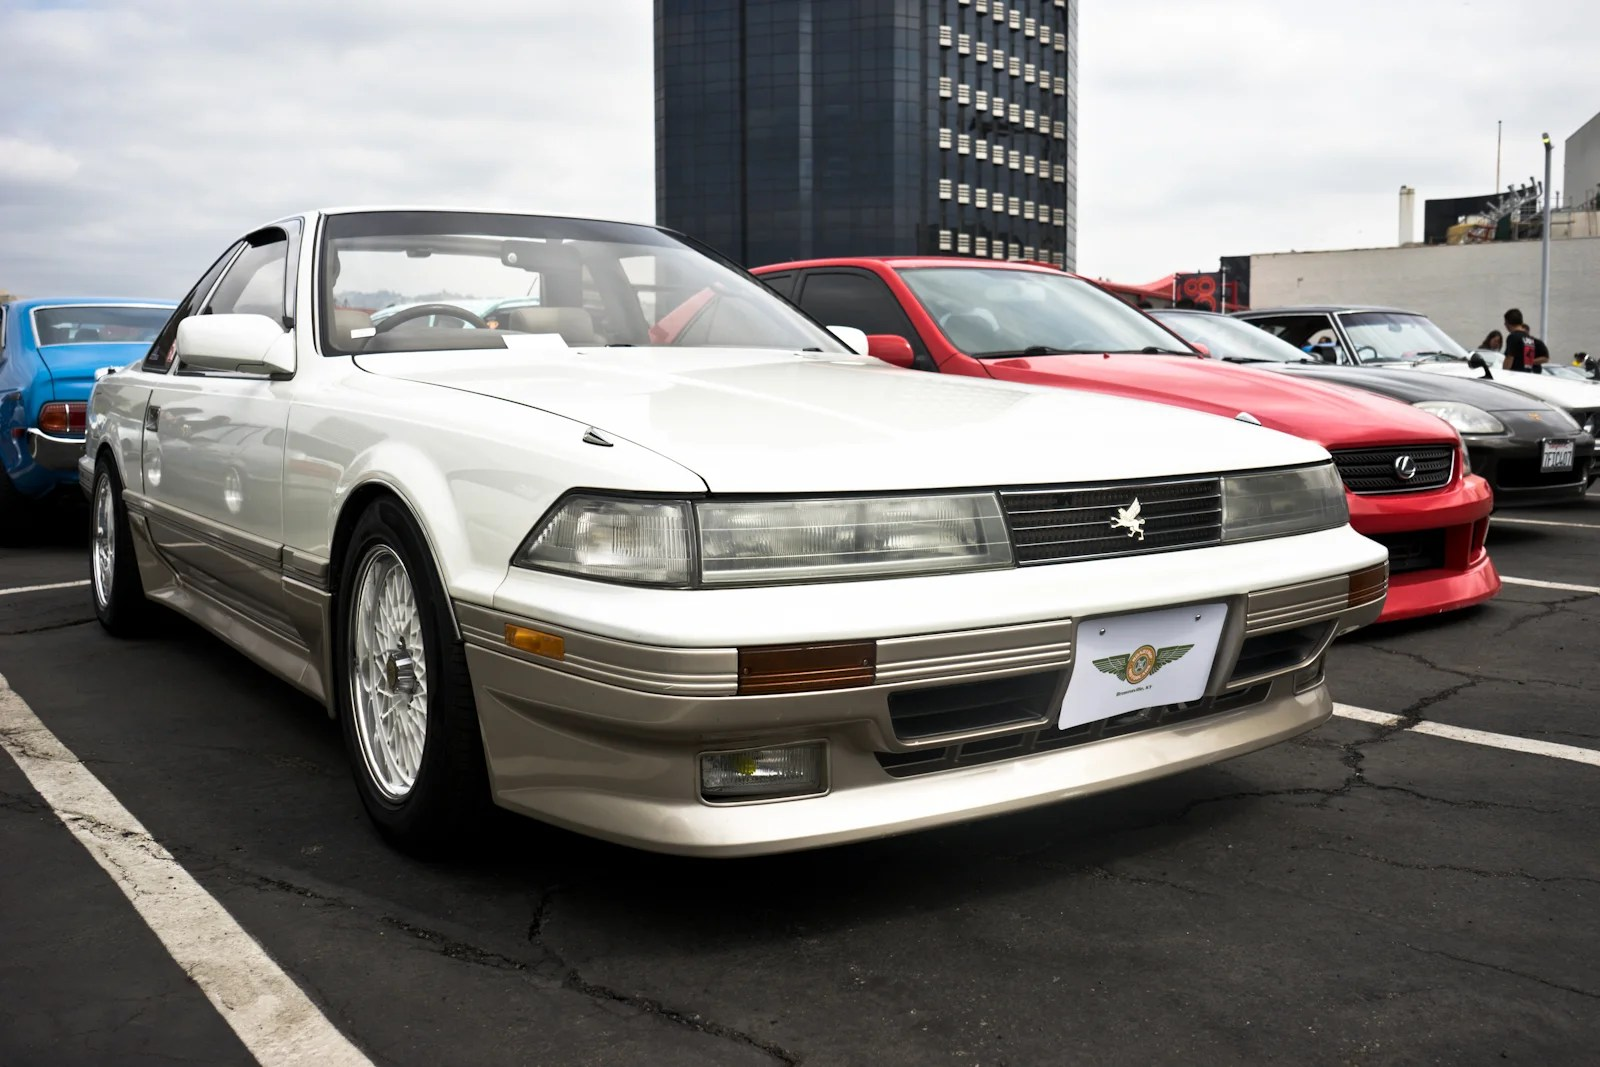 Toyota Soarer coupe